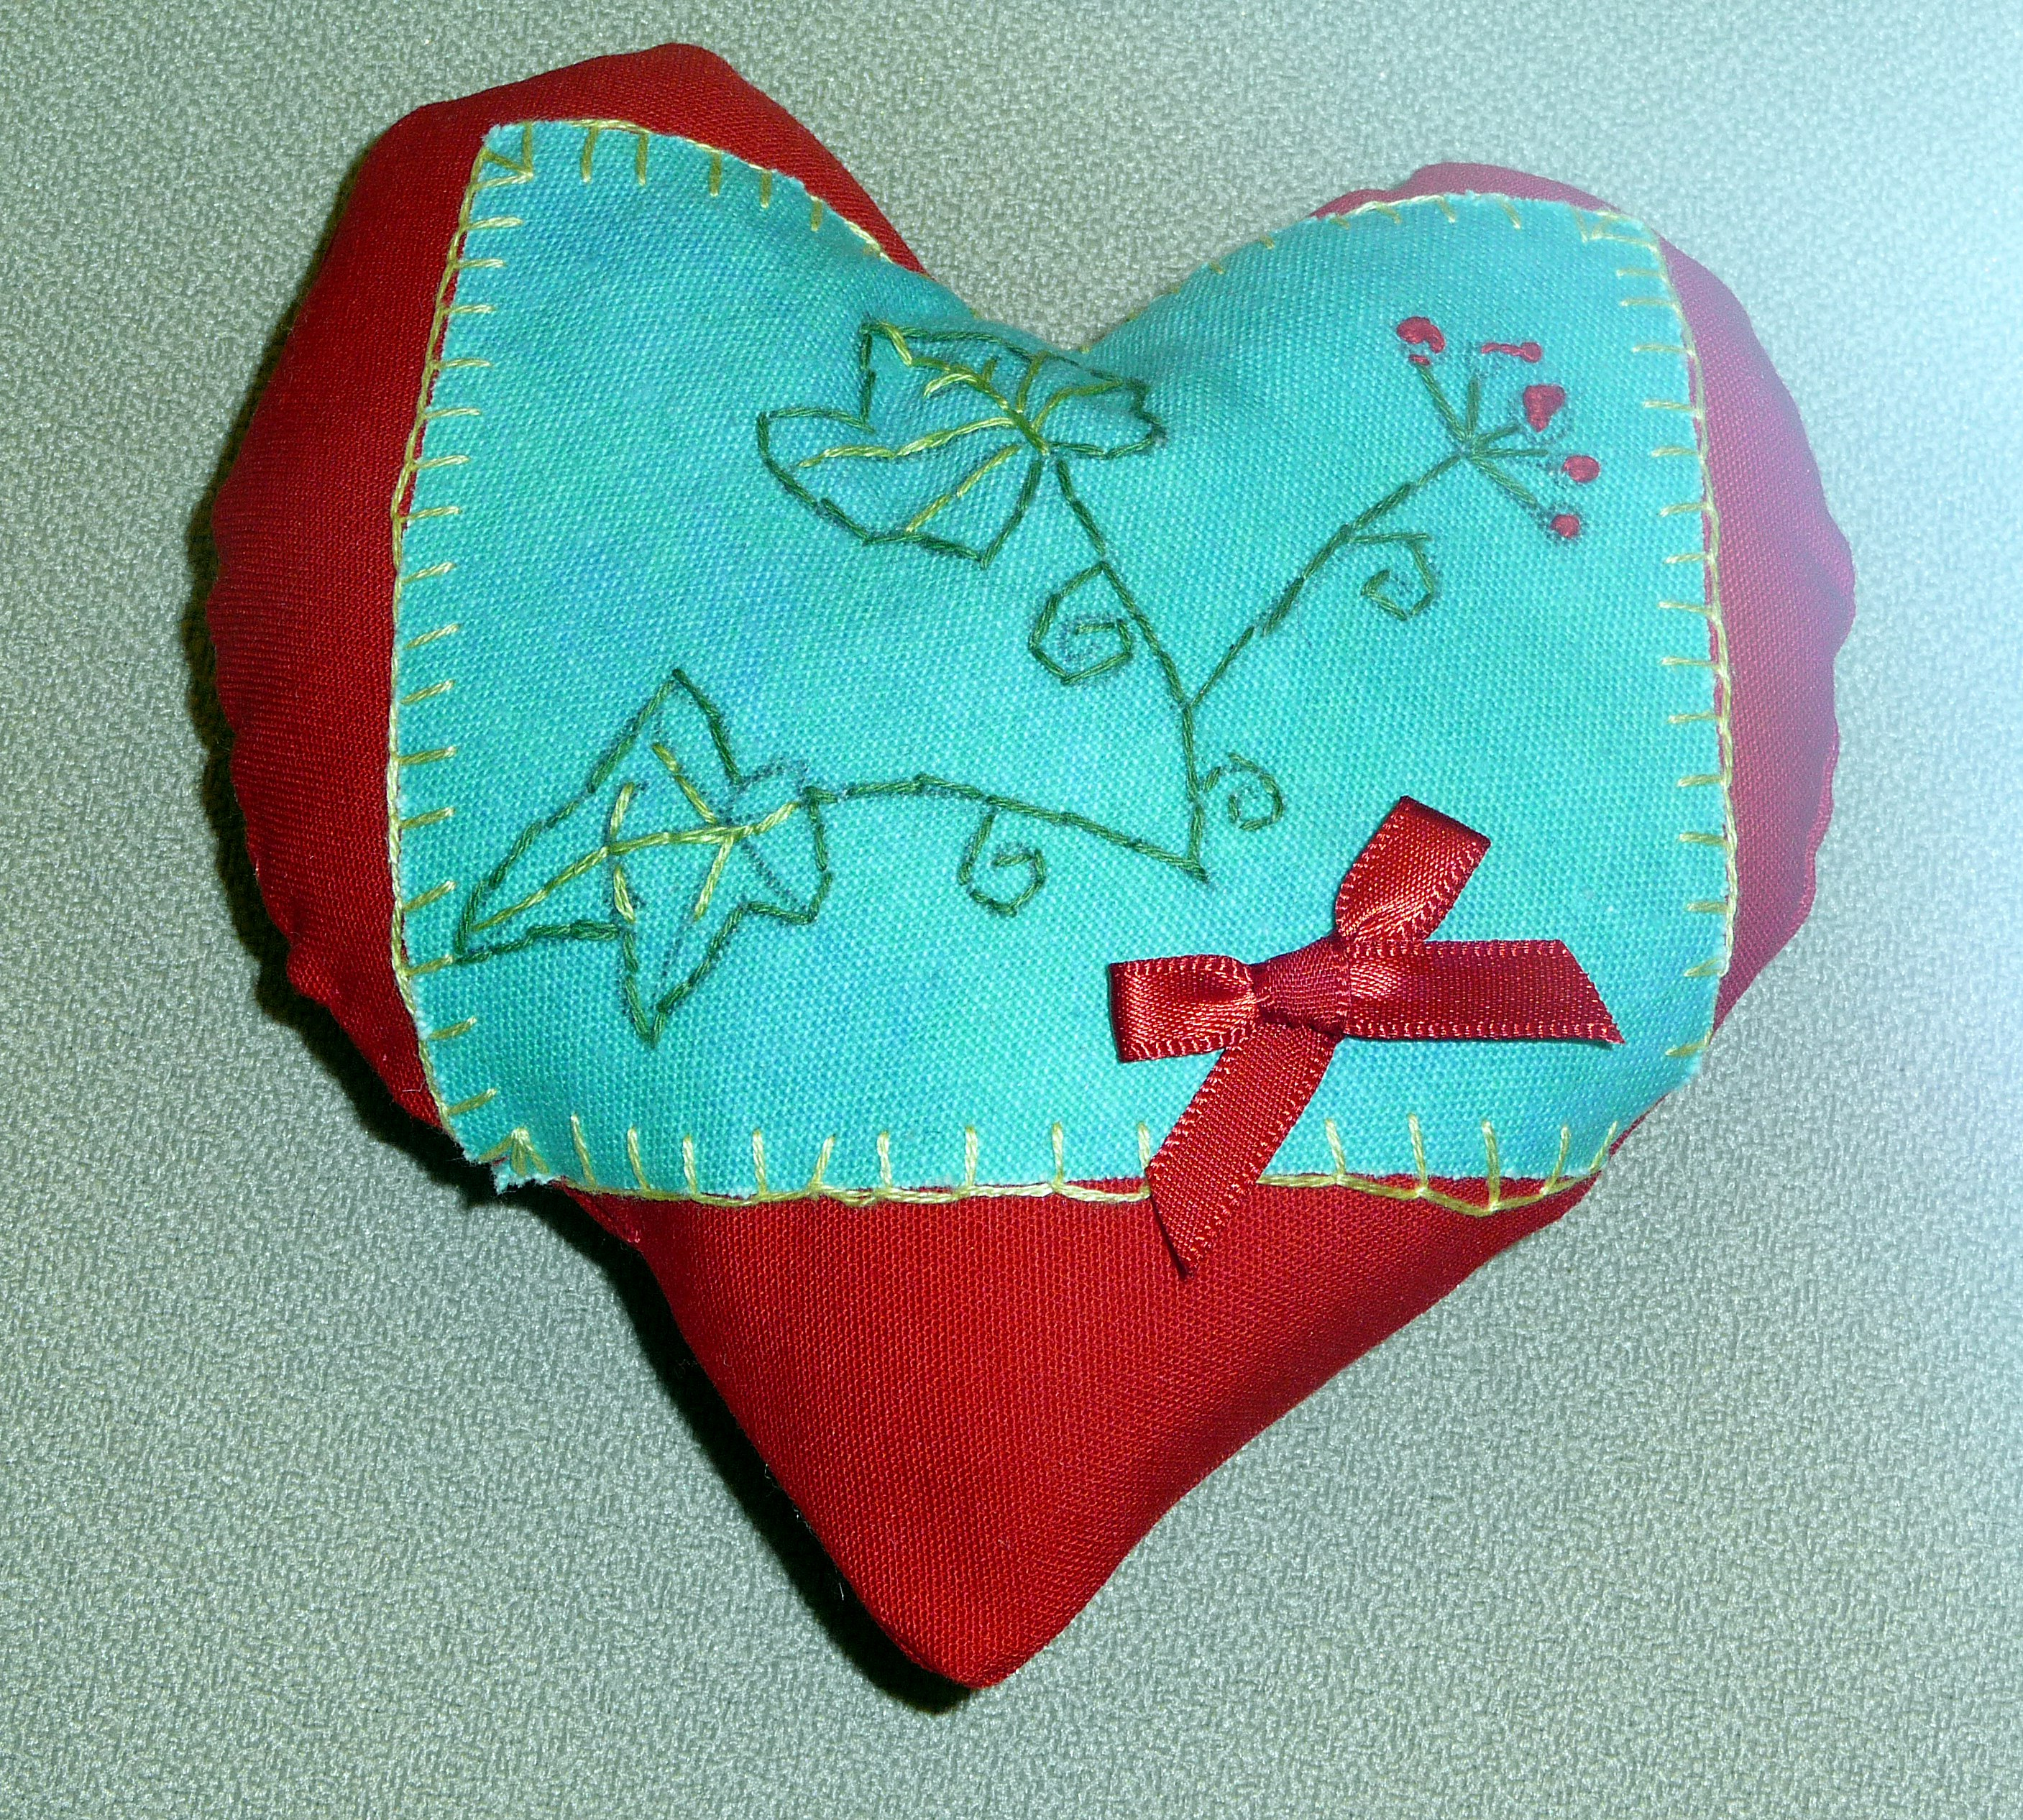 pincushion to commemorate World War 1 made by Zoe, a Merseyside Young Embroiderer